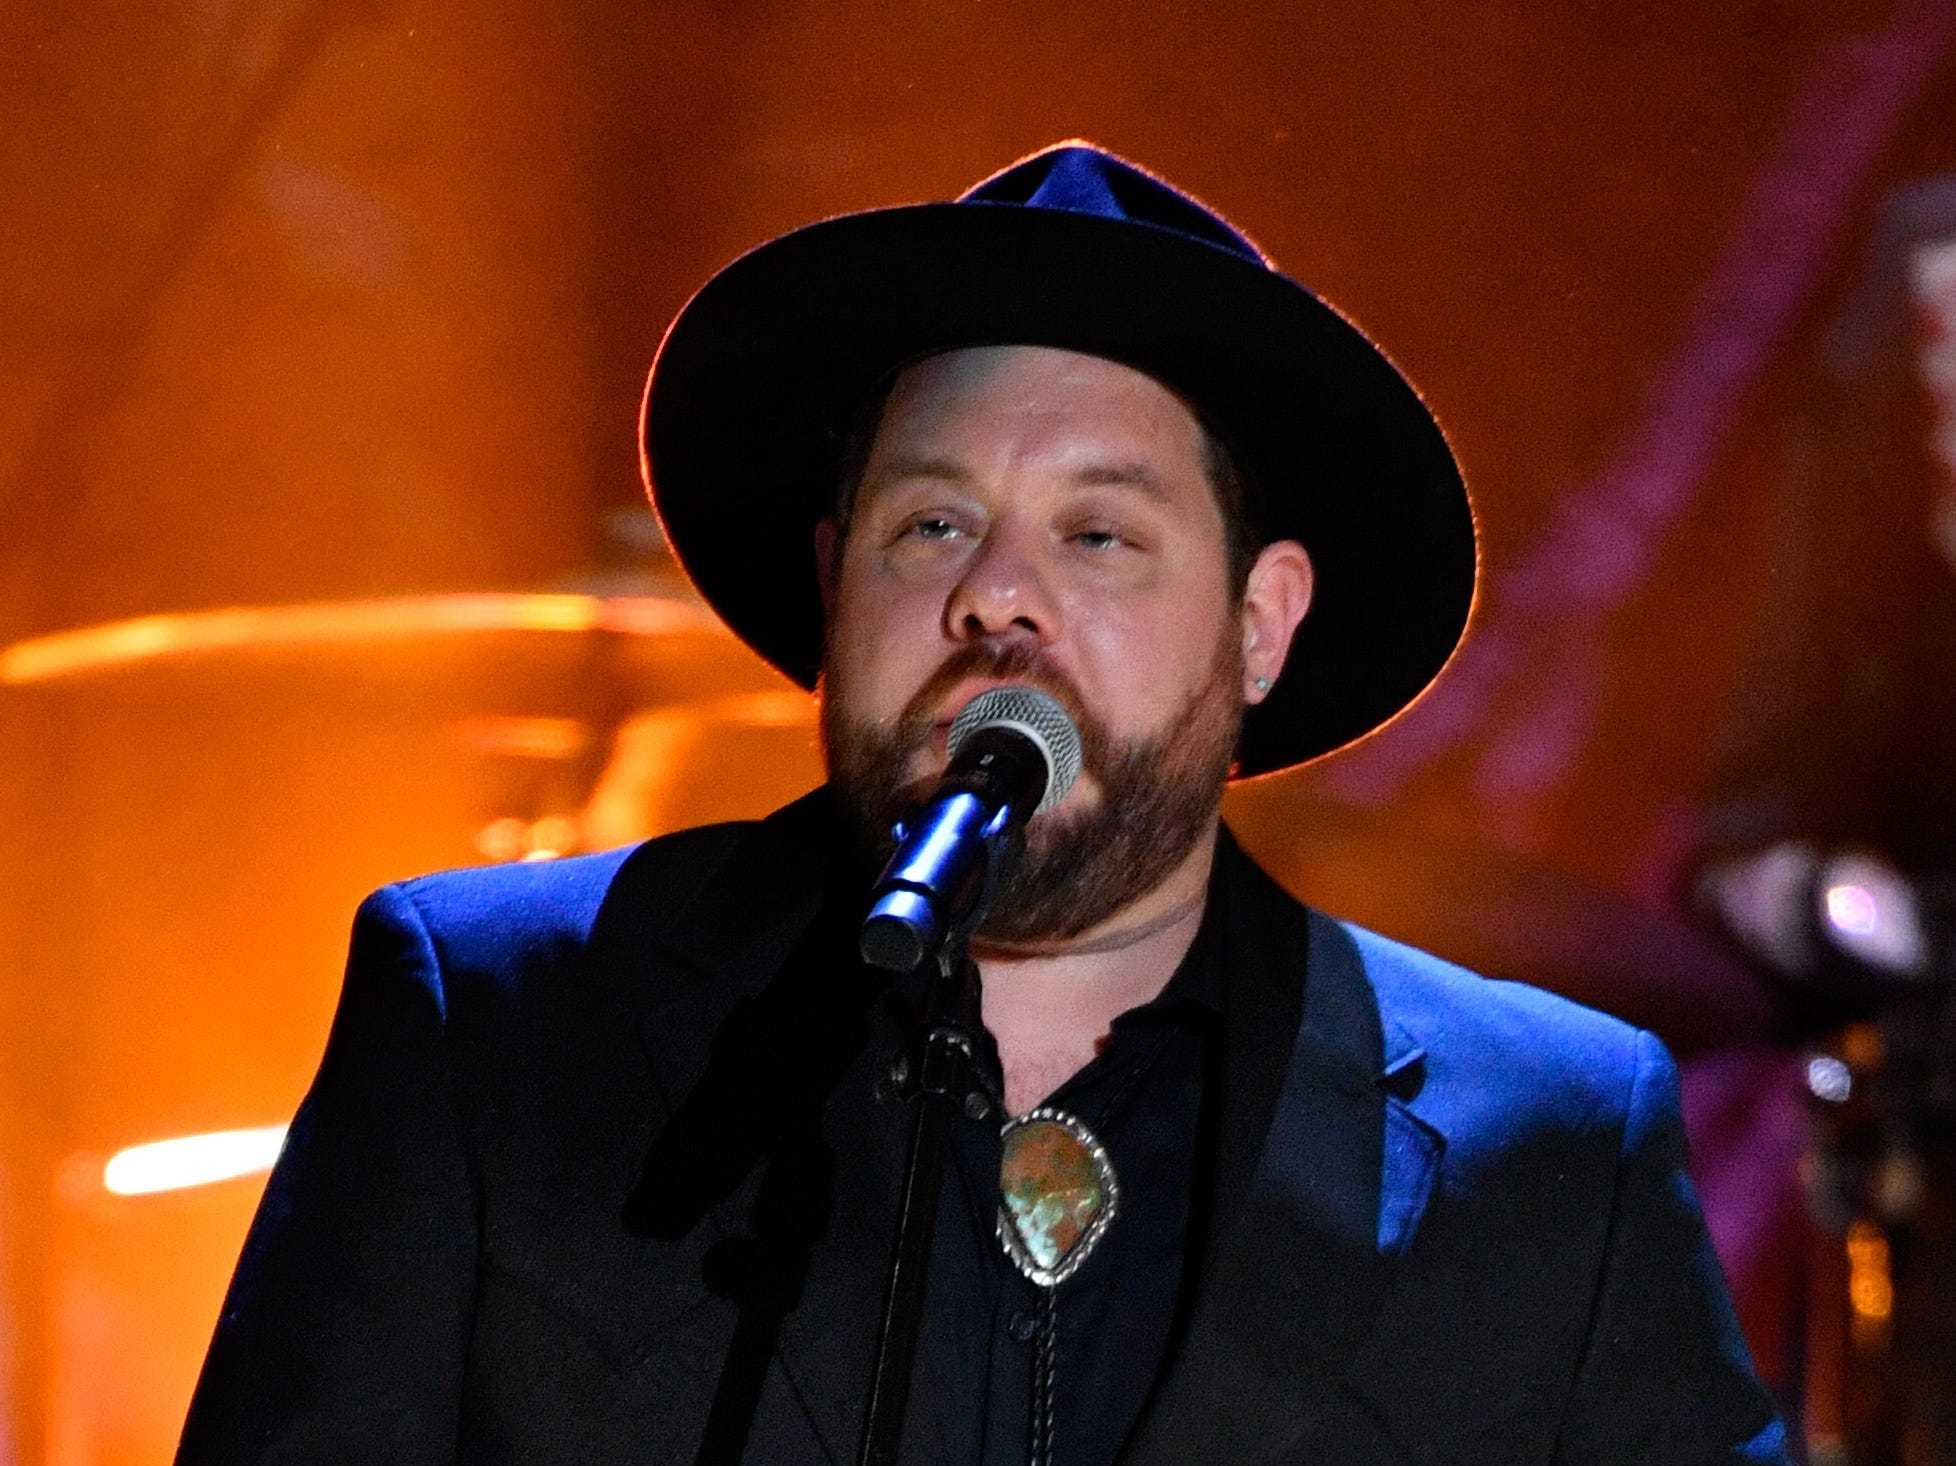 Nathaniel Rateliff performs during the 2018 Americana Honors and Awards show at the Ryman Auditorium in Nashville, Tenn., Wednesday, Sept. 12, 2018.